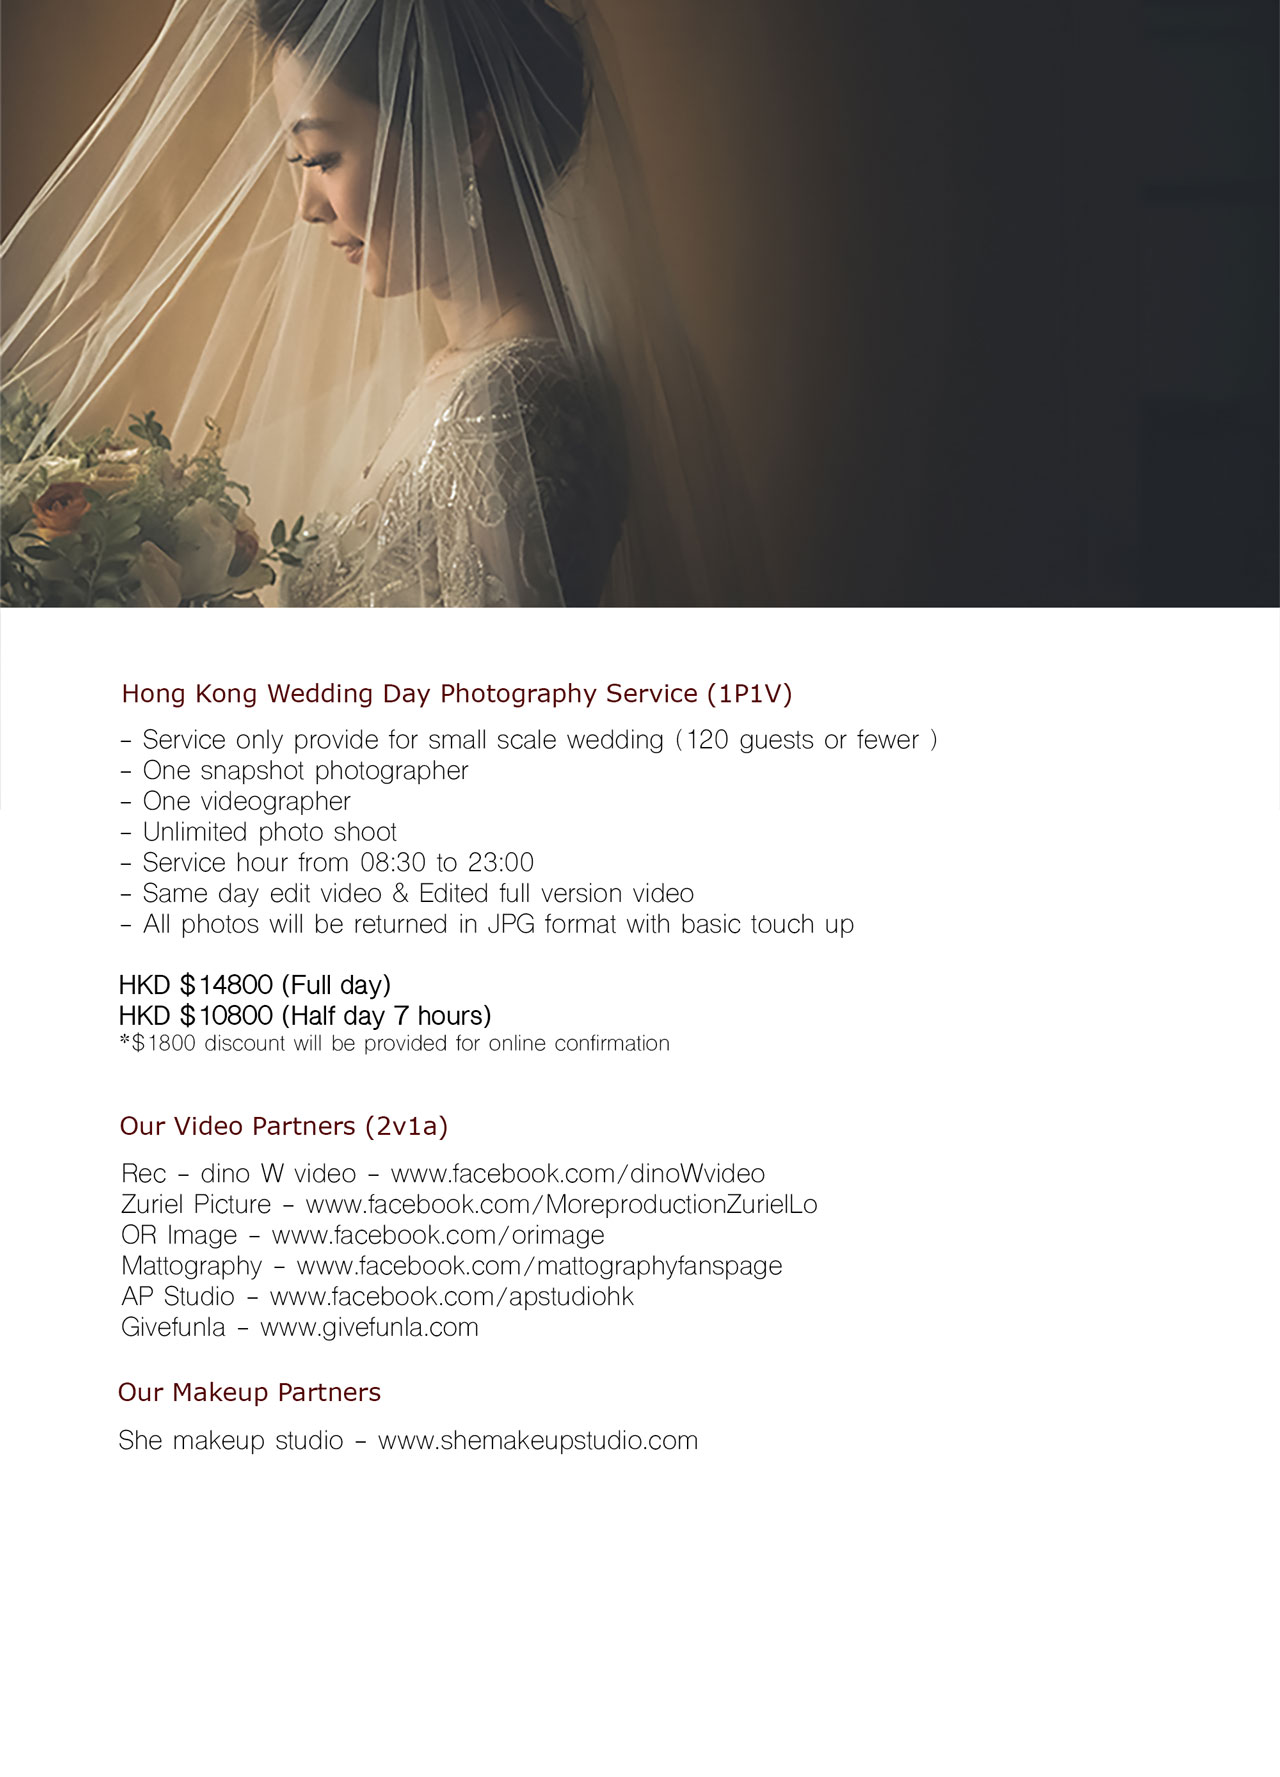 wedding day rates 2